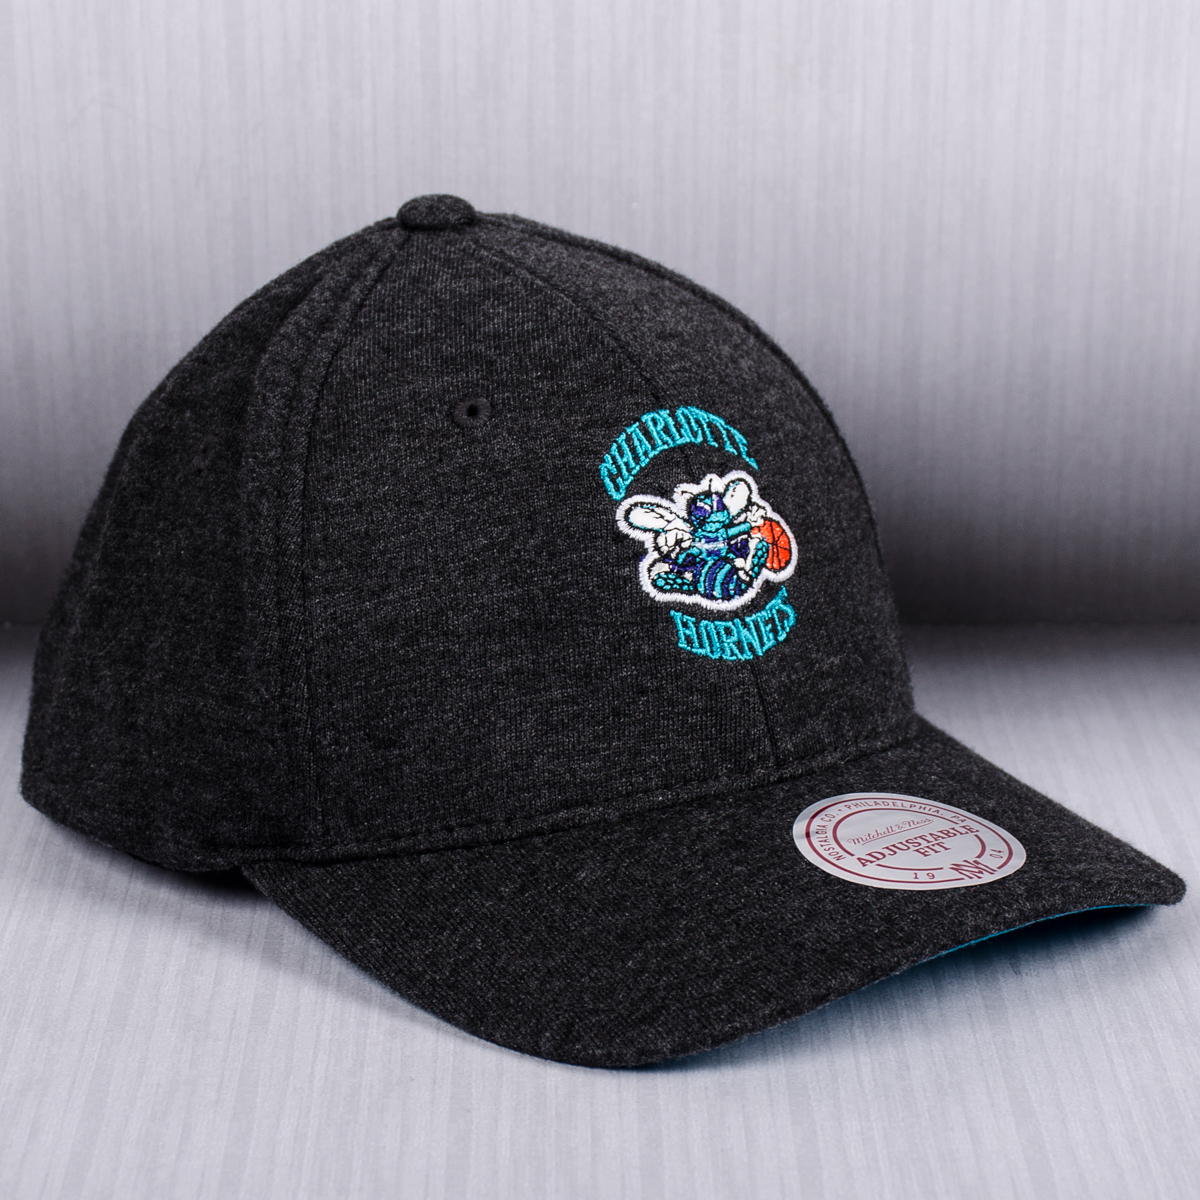 new concept 9e2eb 63891 Mitchell   Ness NBA Charlotte Hornets Sweat Cap - NBA Shop Charlotte  Hornets Merchandise - Superfanas.lt